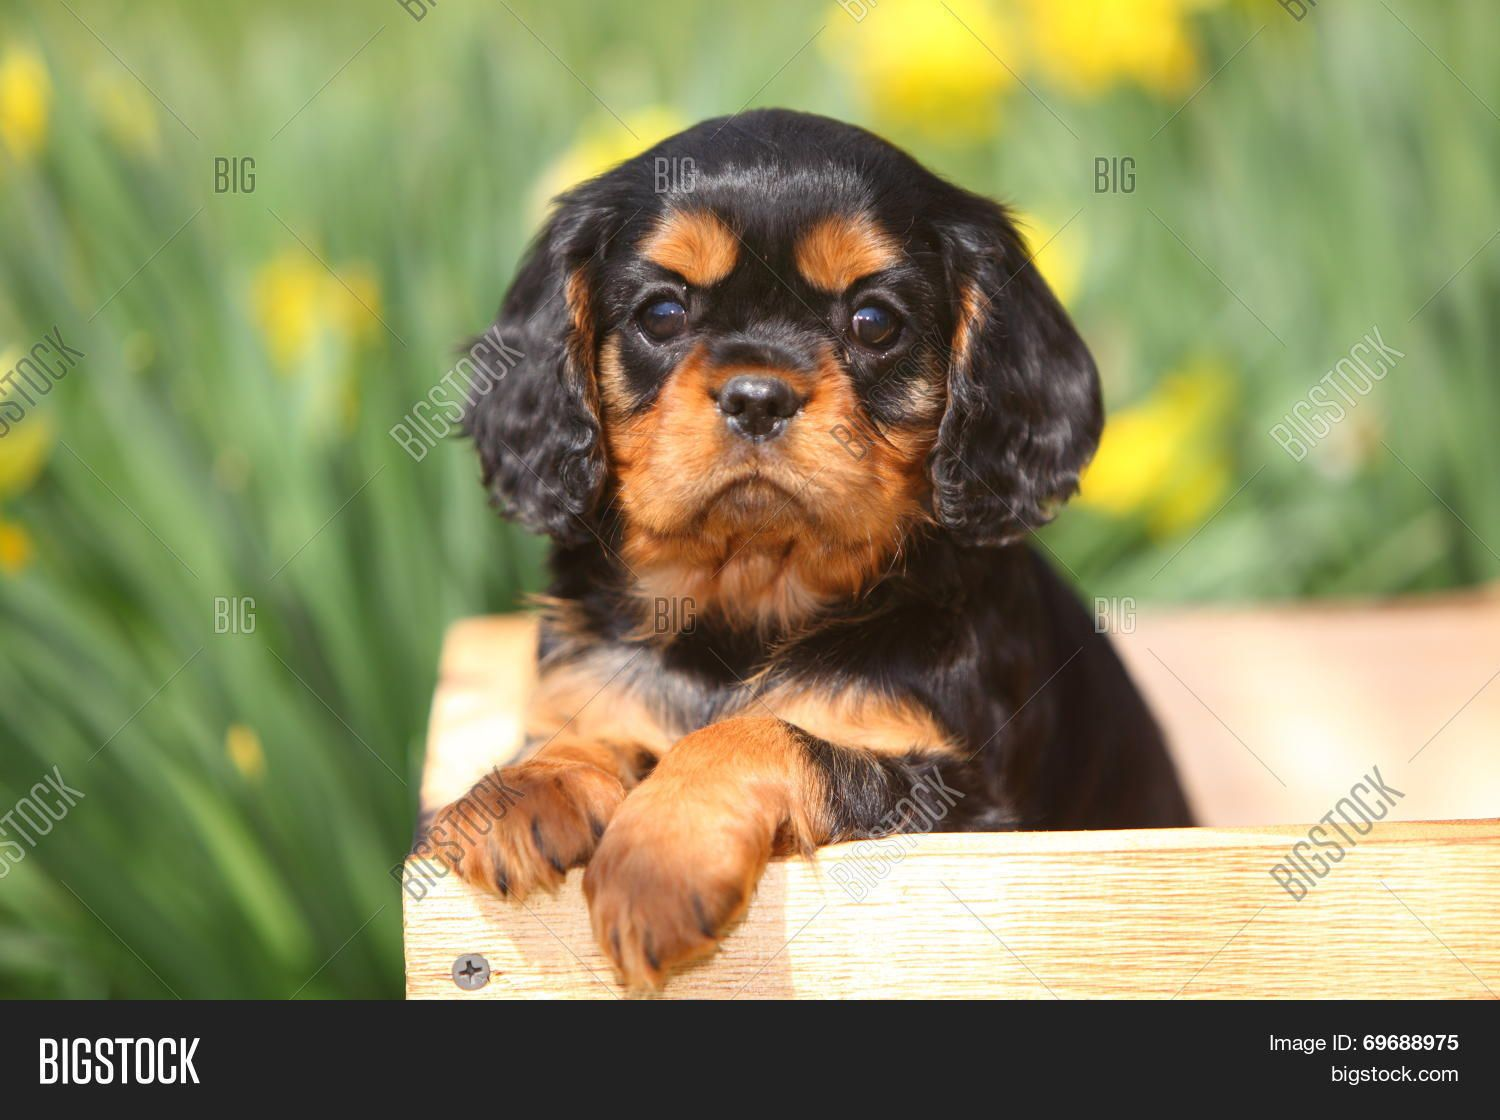 An Adorable Black And Tan Cavalier King Charles Spaniel Puppy Sits